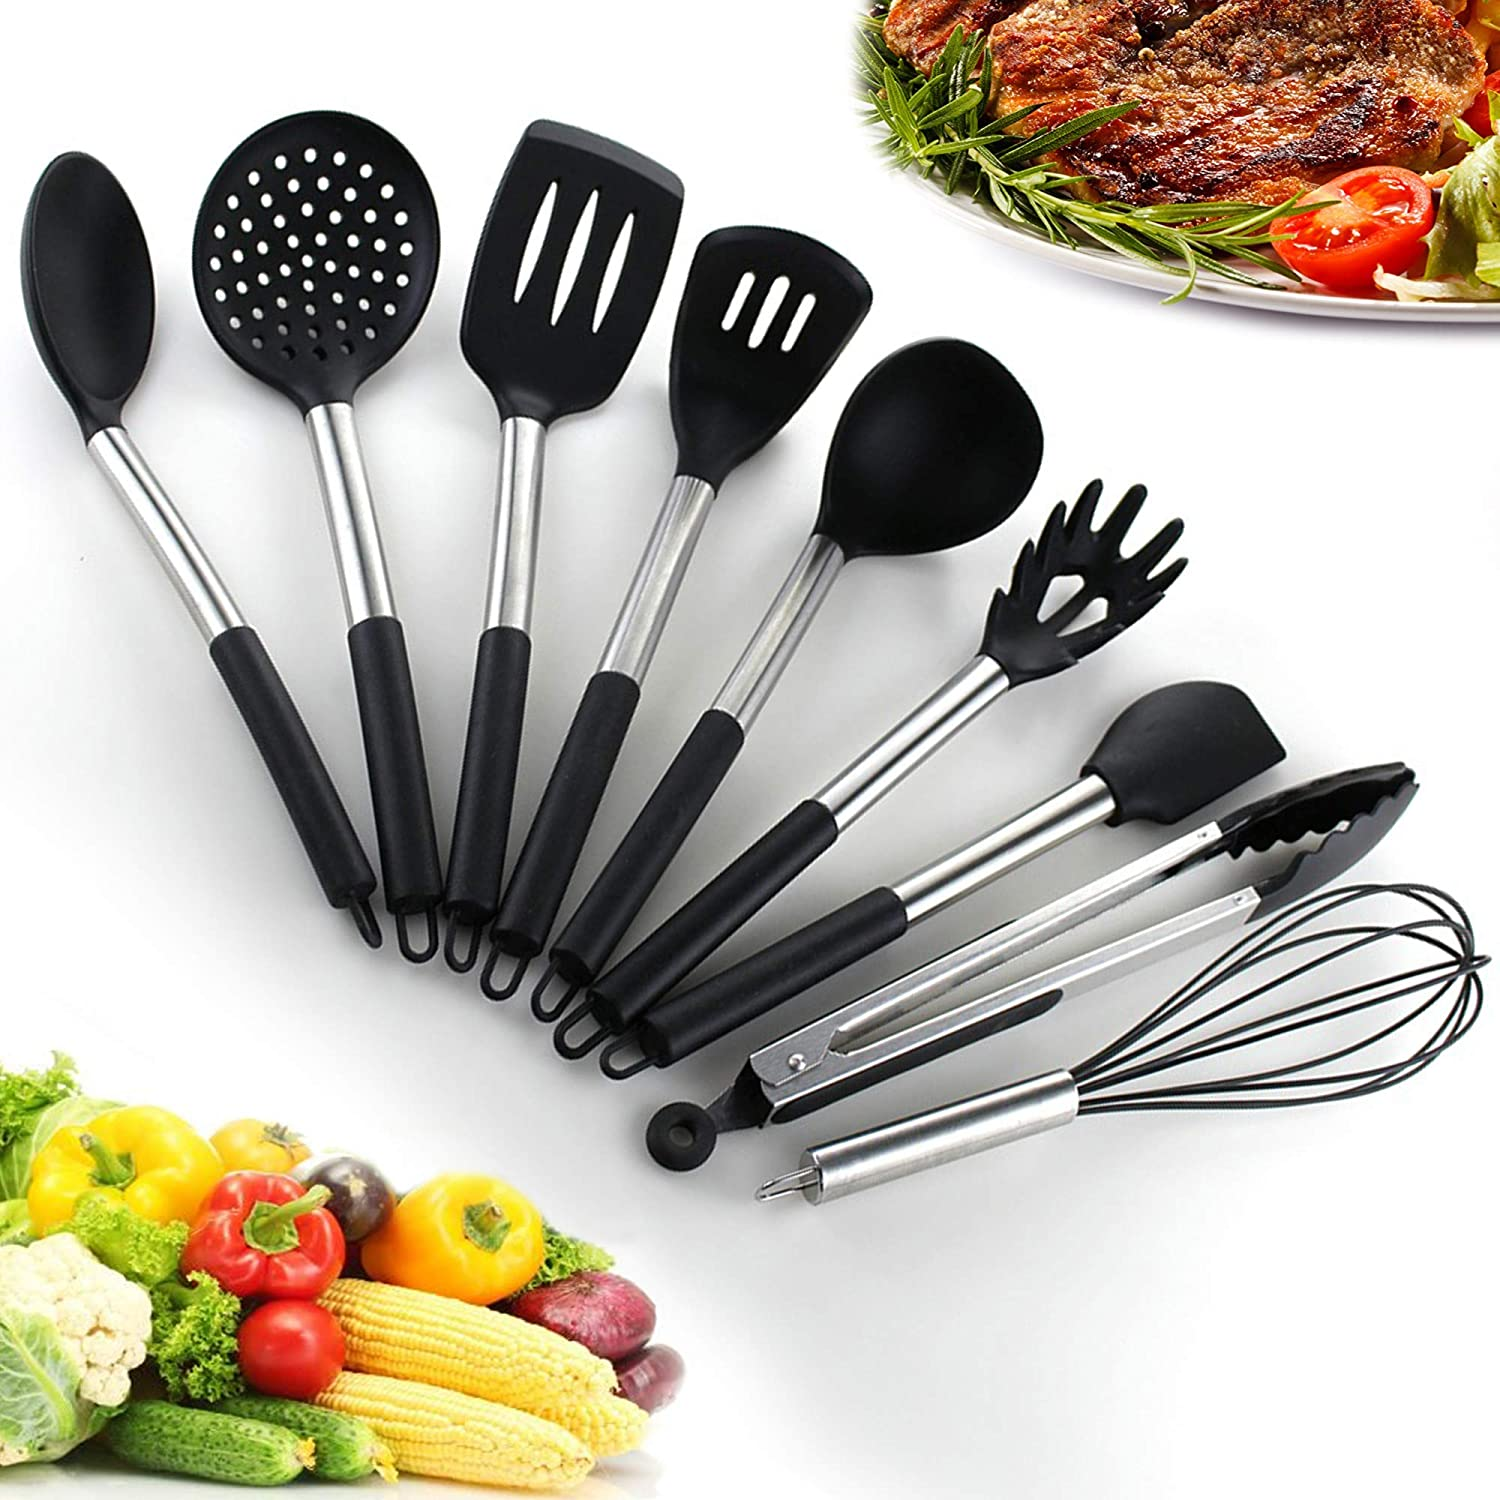 Kitchen Utensil Set – 9 pcs Non-stick Silicone & Stainless Steel Cooking Utensils Heat Resistant tools – Slotted Turner,ladle, Spoon, Pasta Server, Spatula, Potato Masher, Tongs, Skimmer, Whisk by Ethicalz